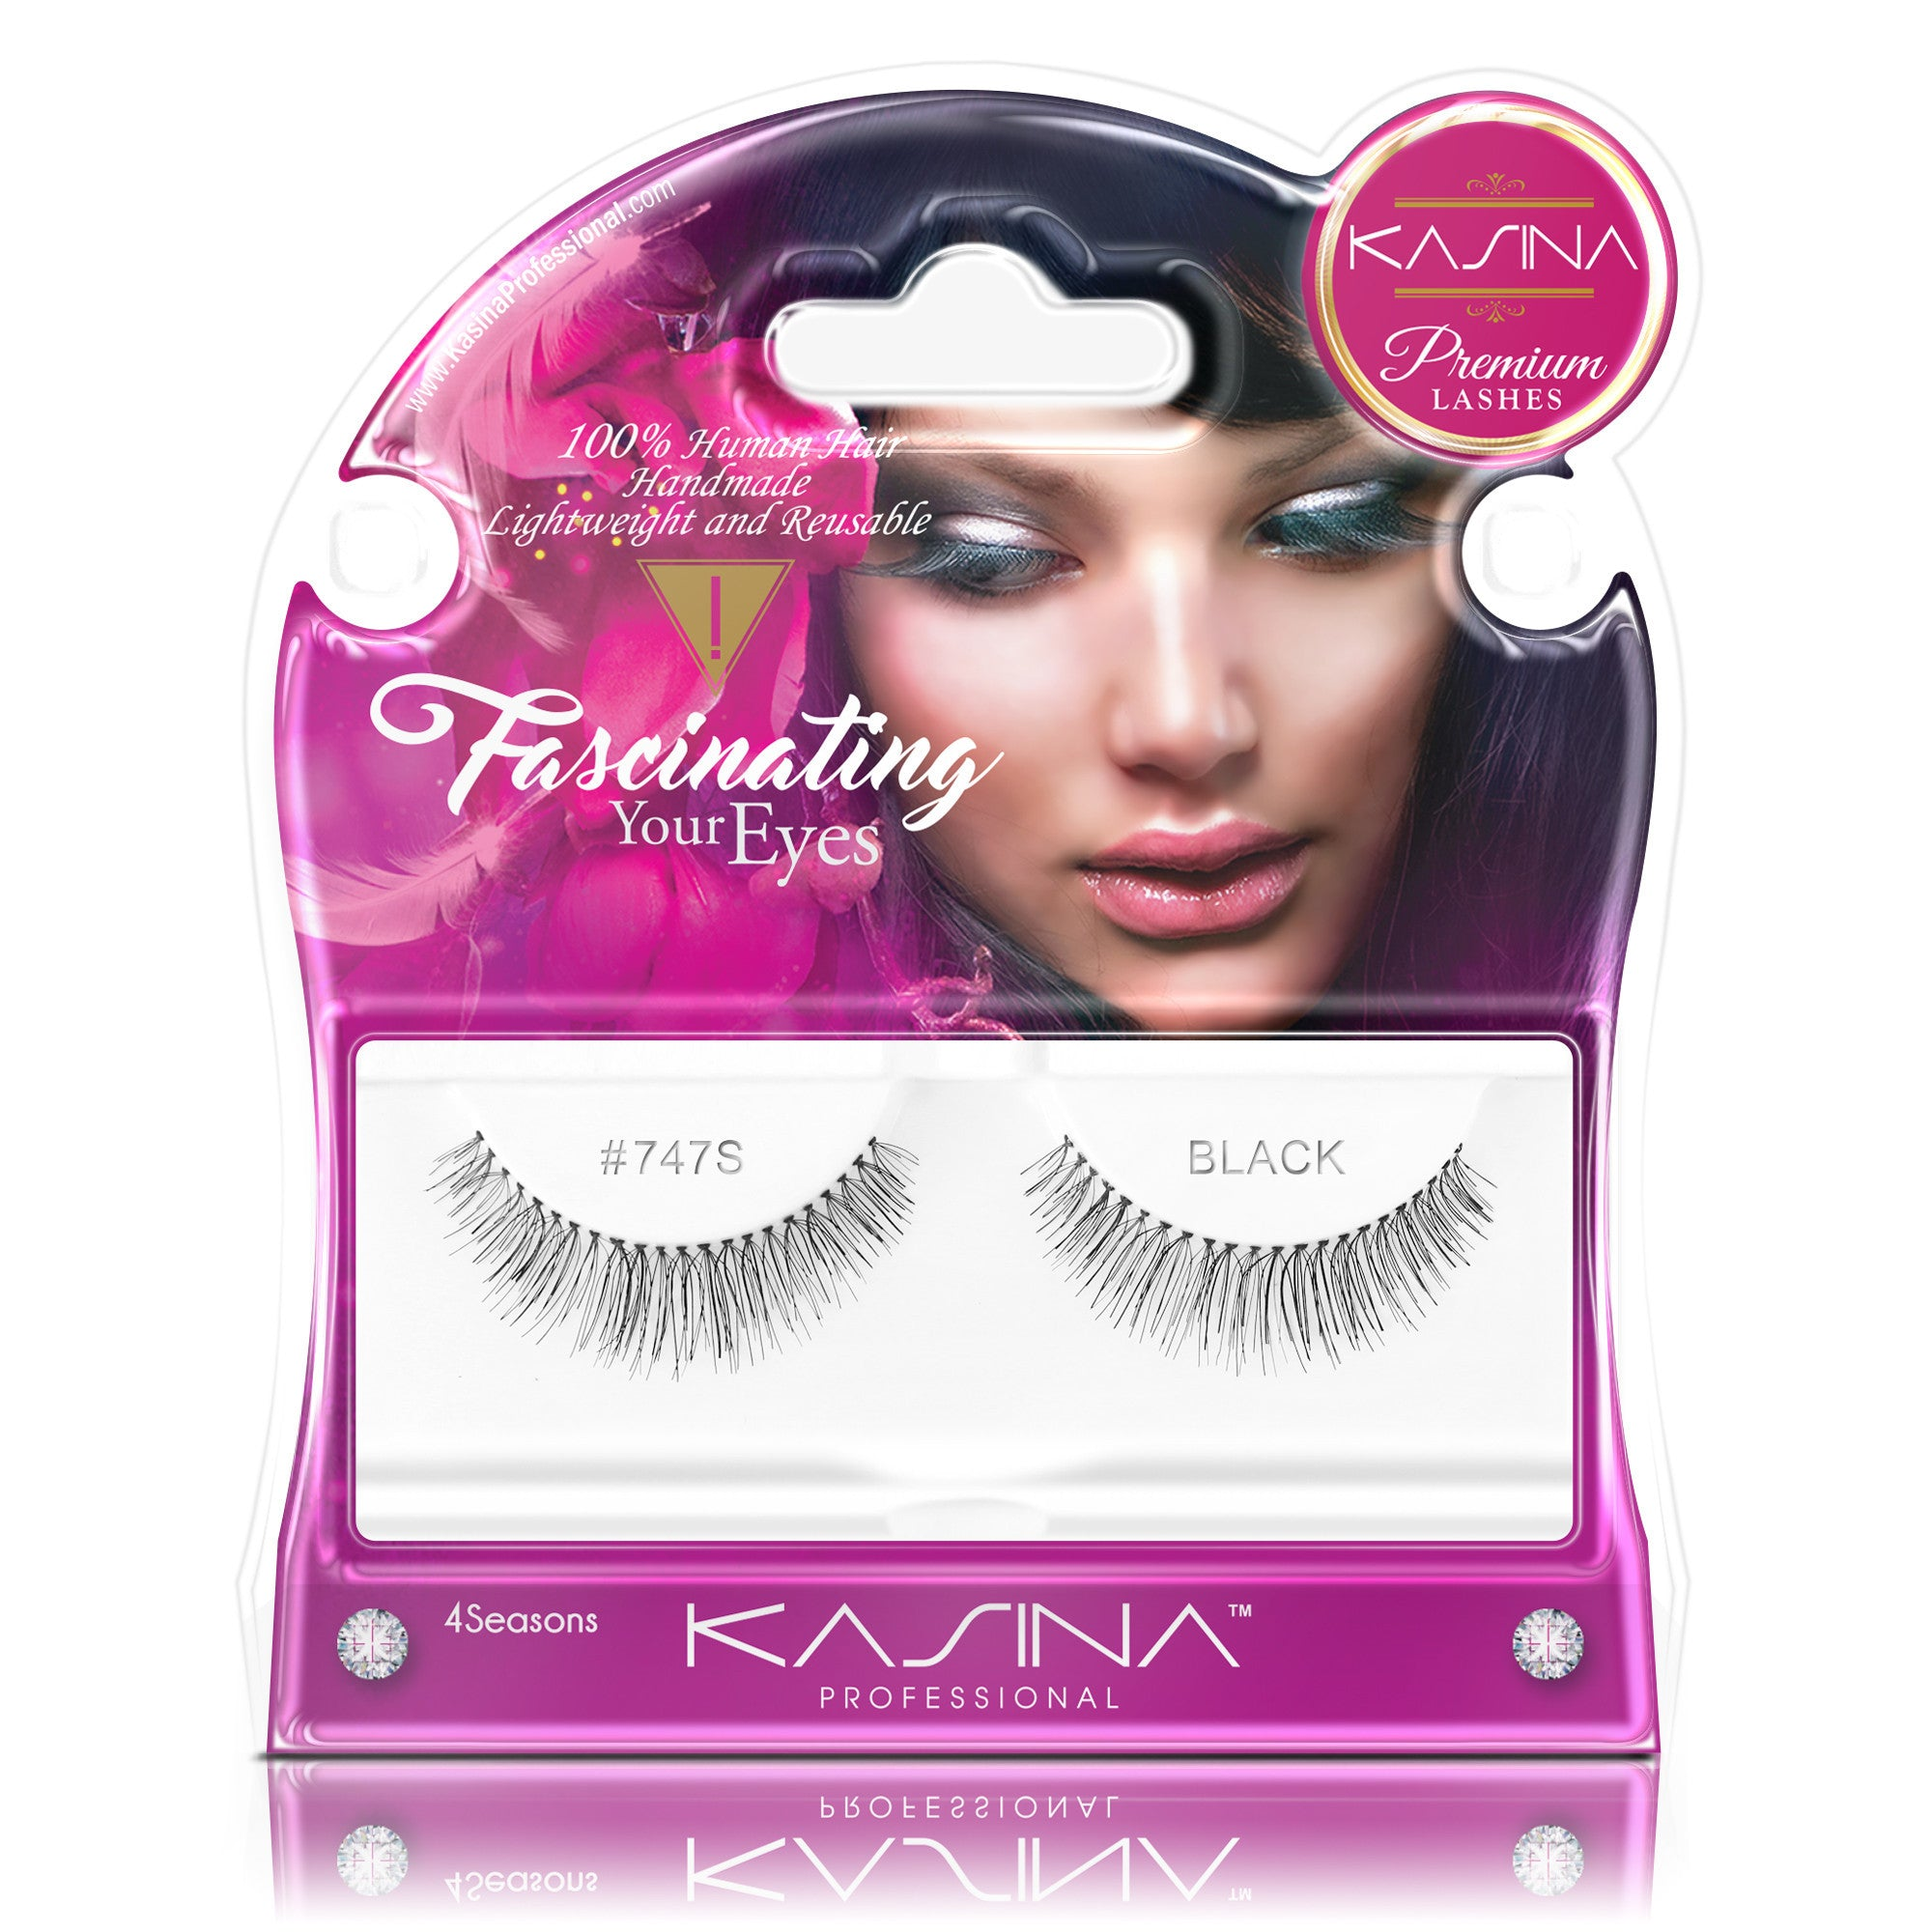 False Lashes - Premium Fascinating #747S, PRIMROSE - Recommended by Professional Makeup Artists.